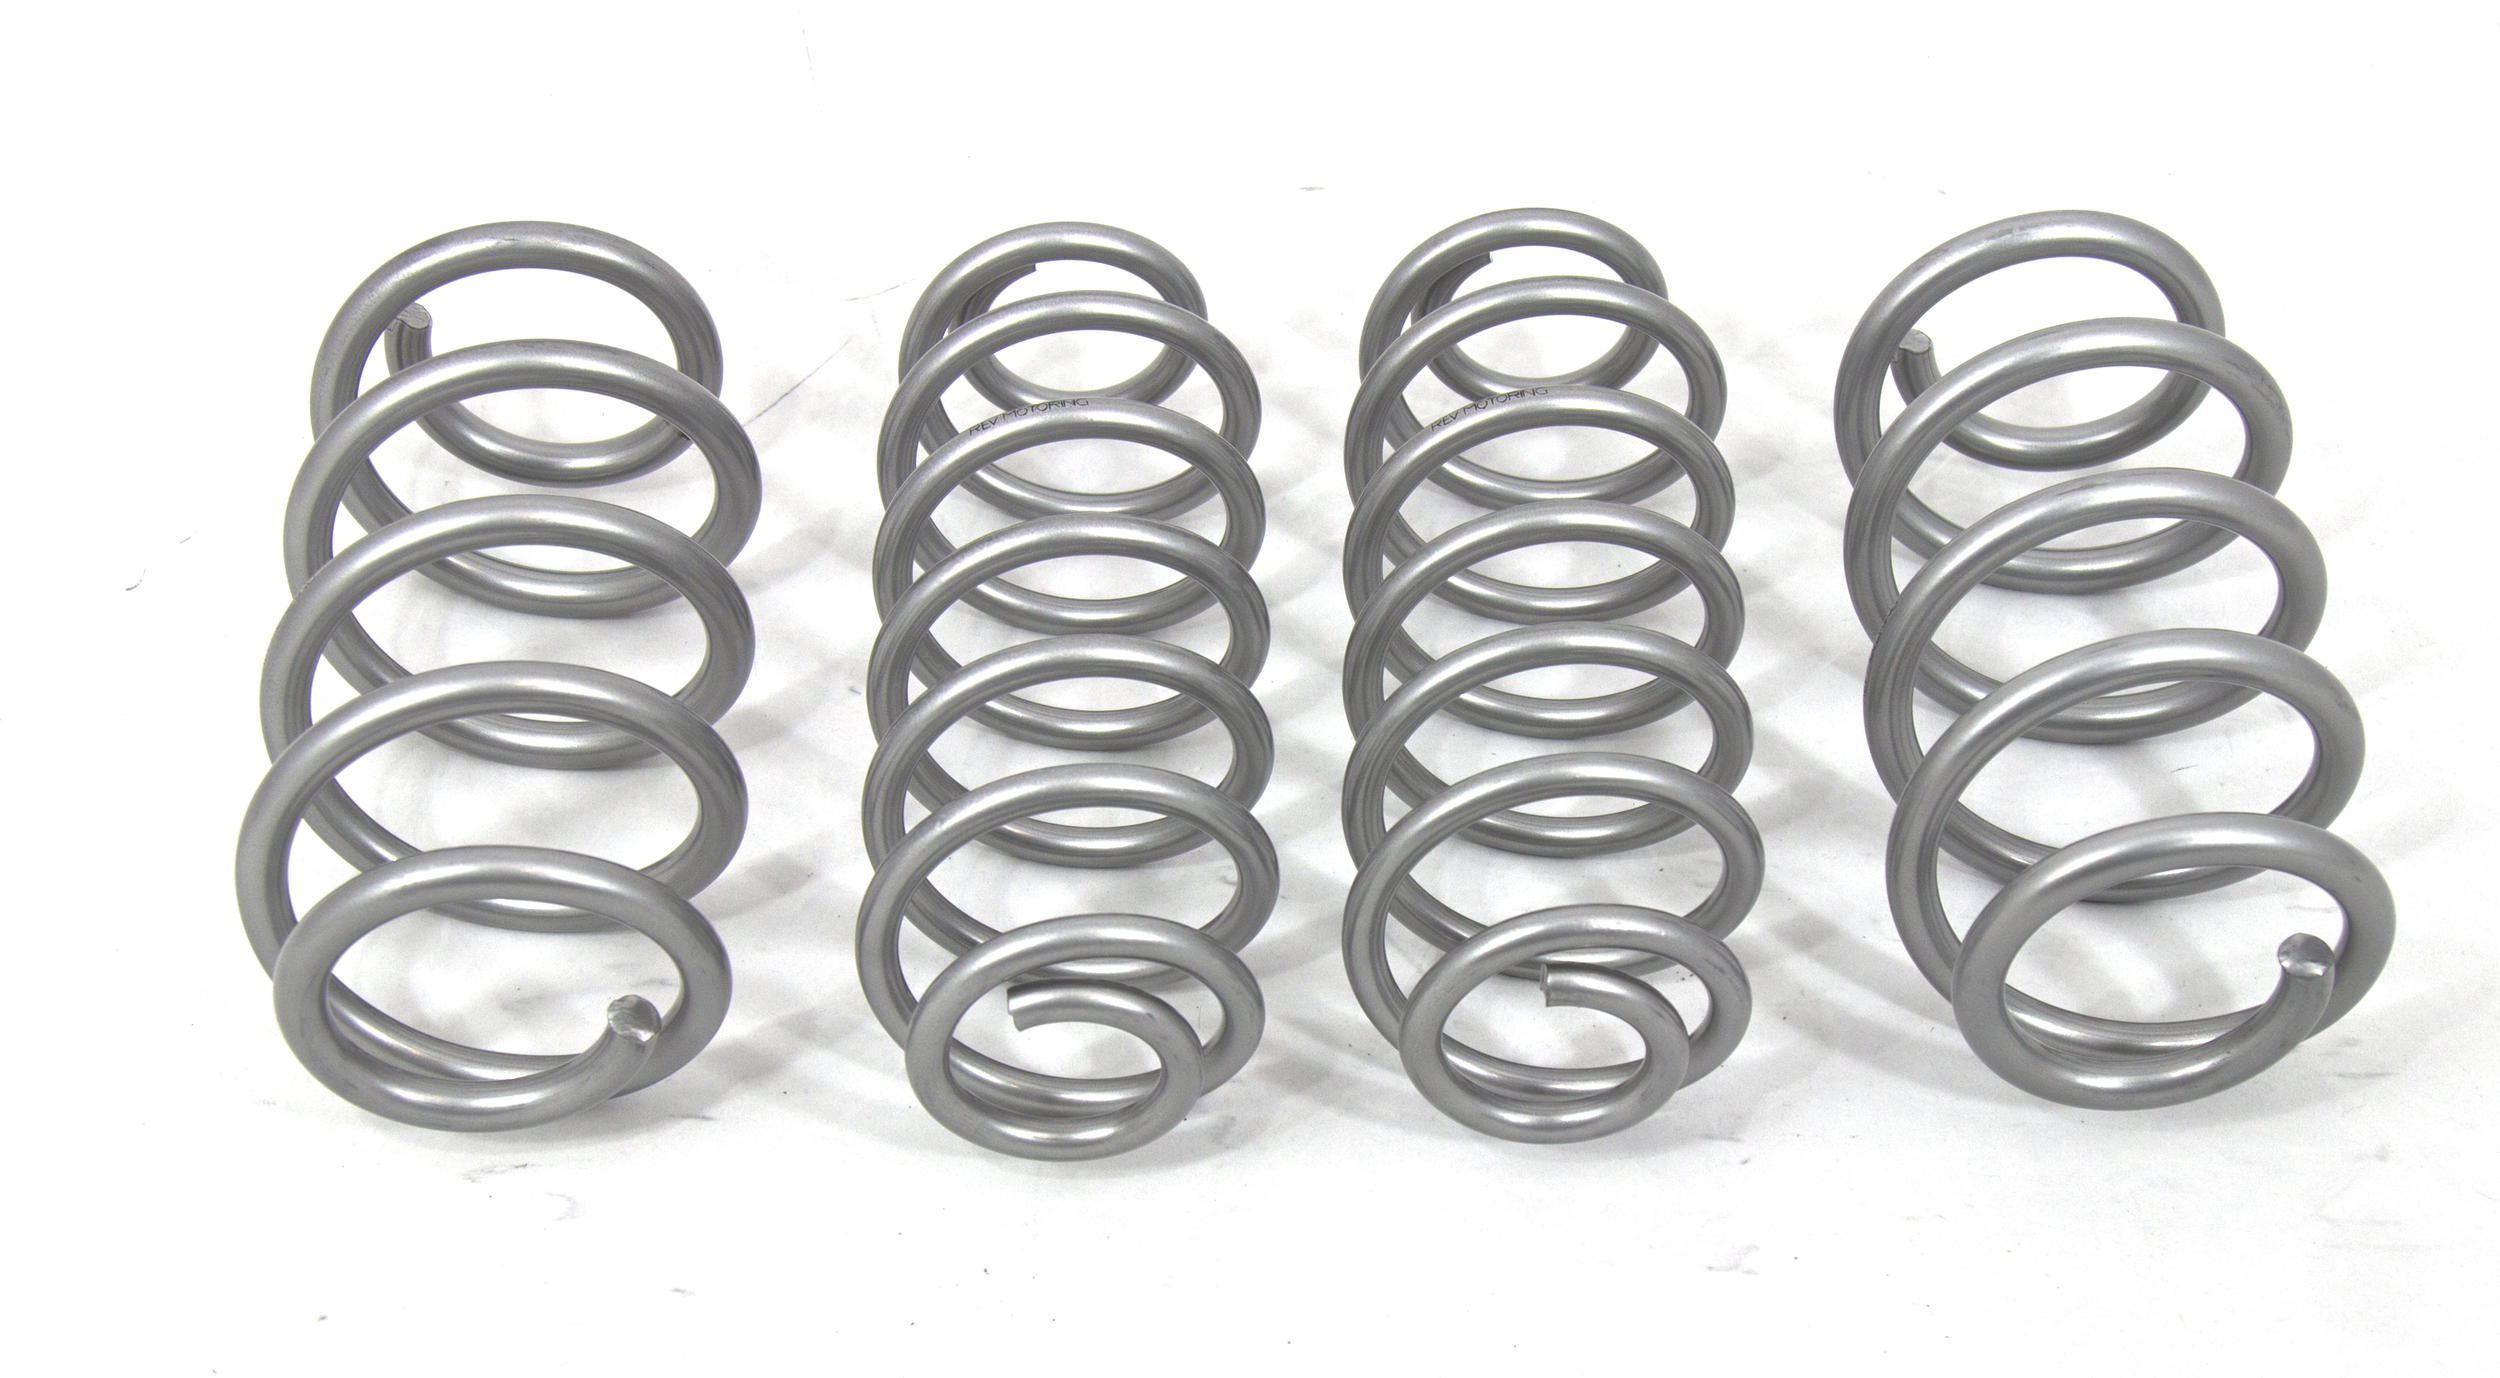 Springs are sold in sets of 4